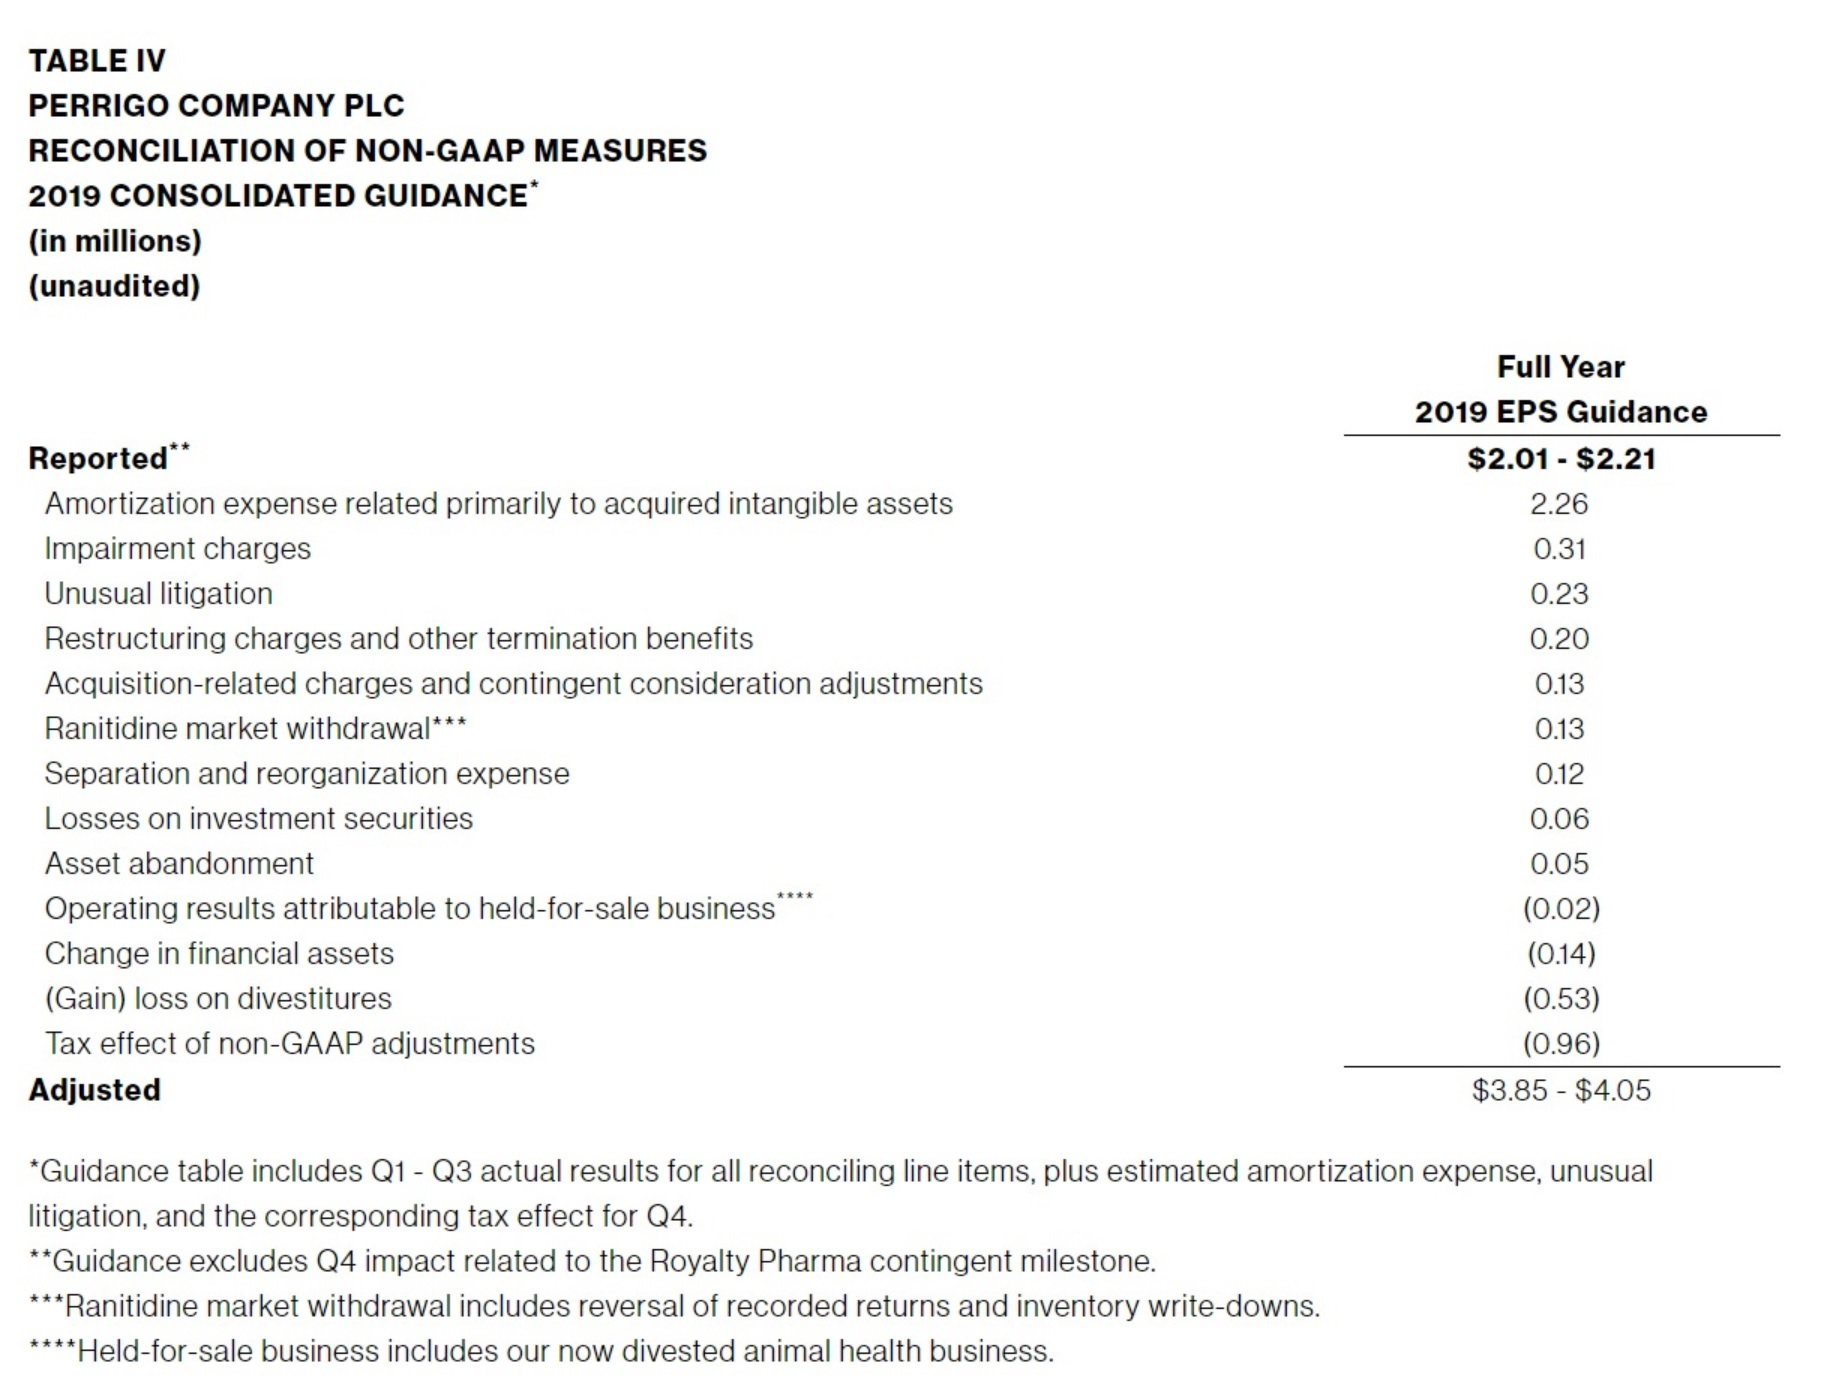 TABLE-IV-PERRIGO-COMPANY-PLC-RECONCILIATION-OF-NON-GAAP-MEASURES-2019-CONSOLIDATED-GUIDANCE